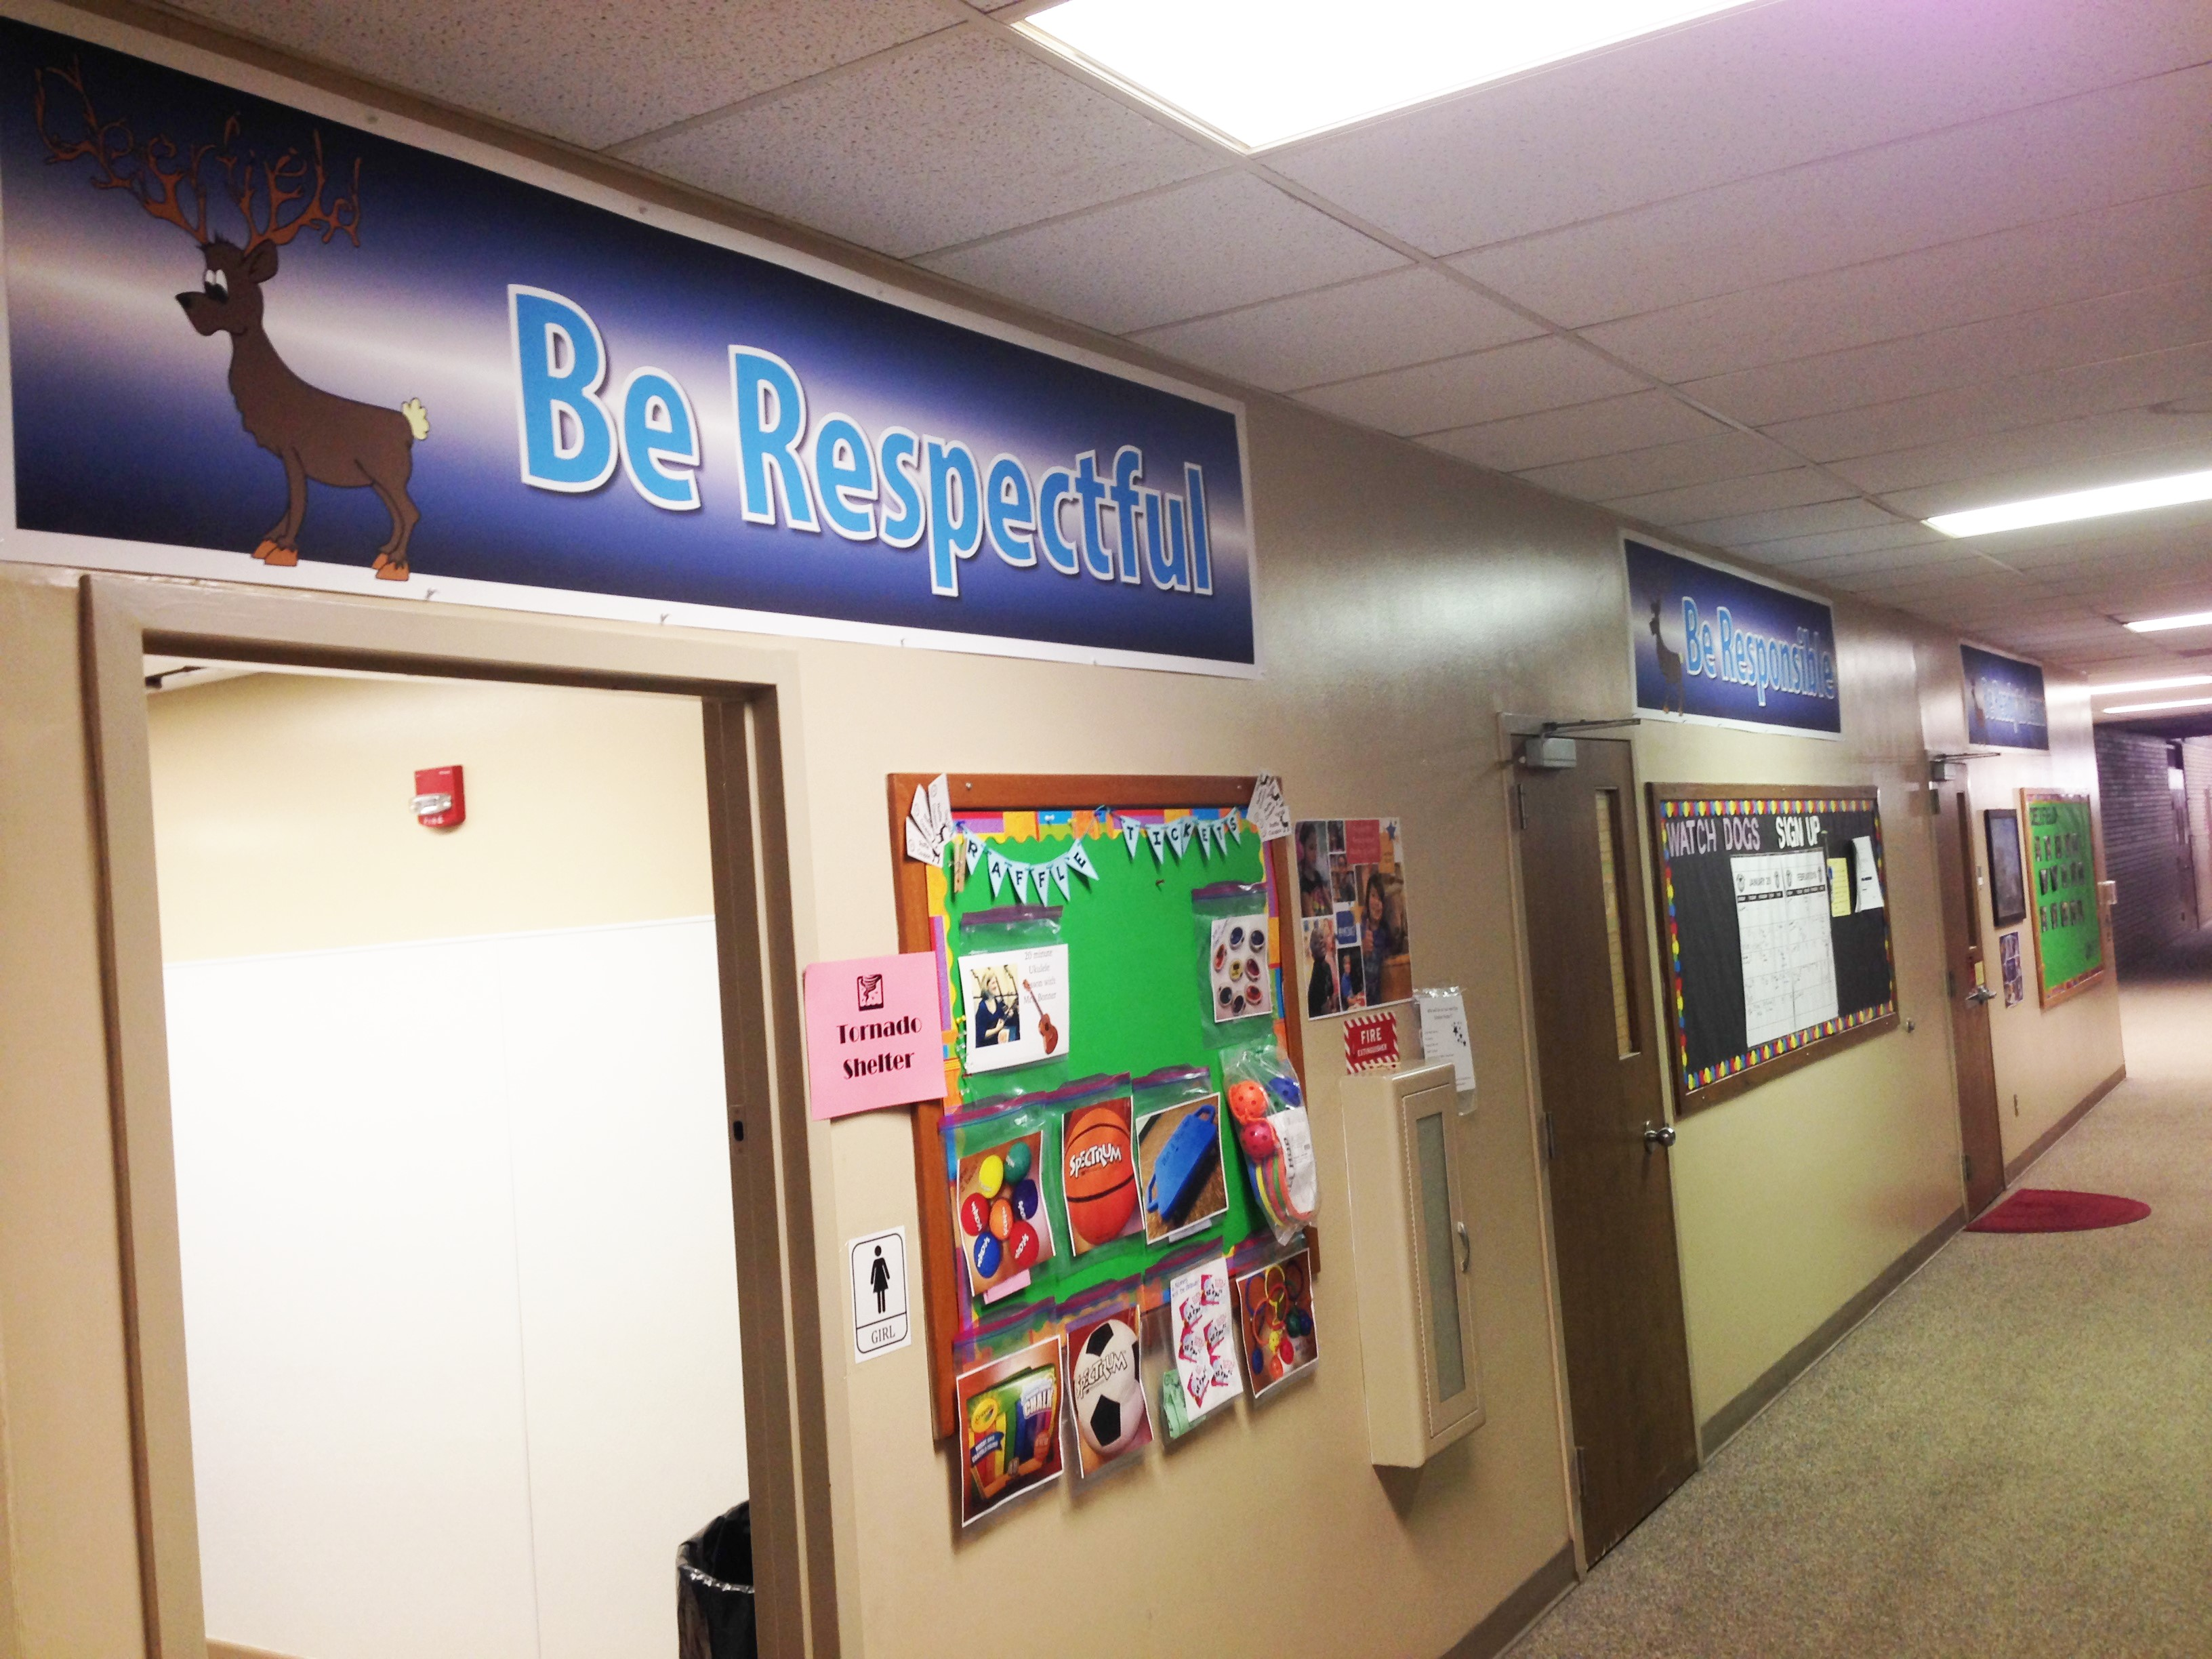 Be respectful sign